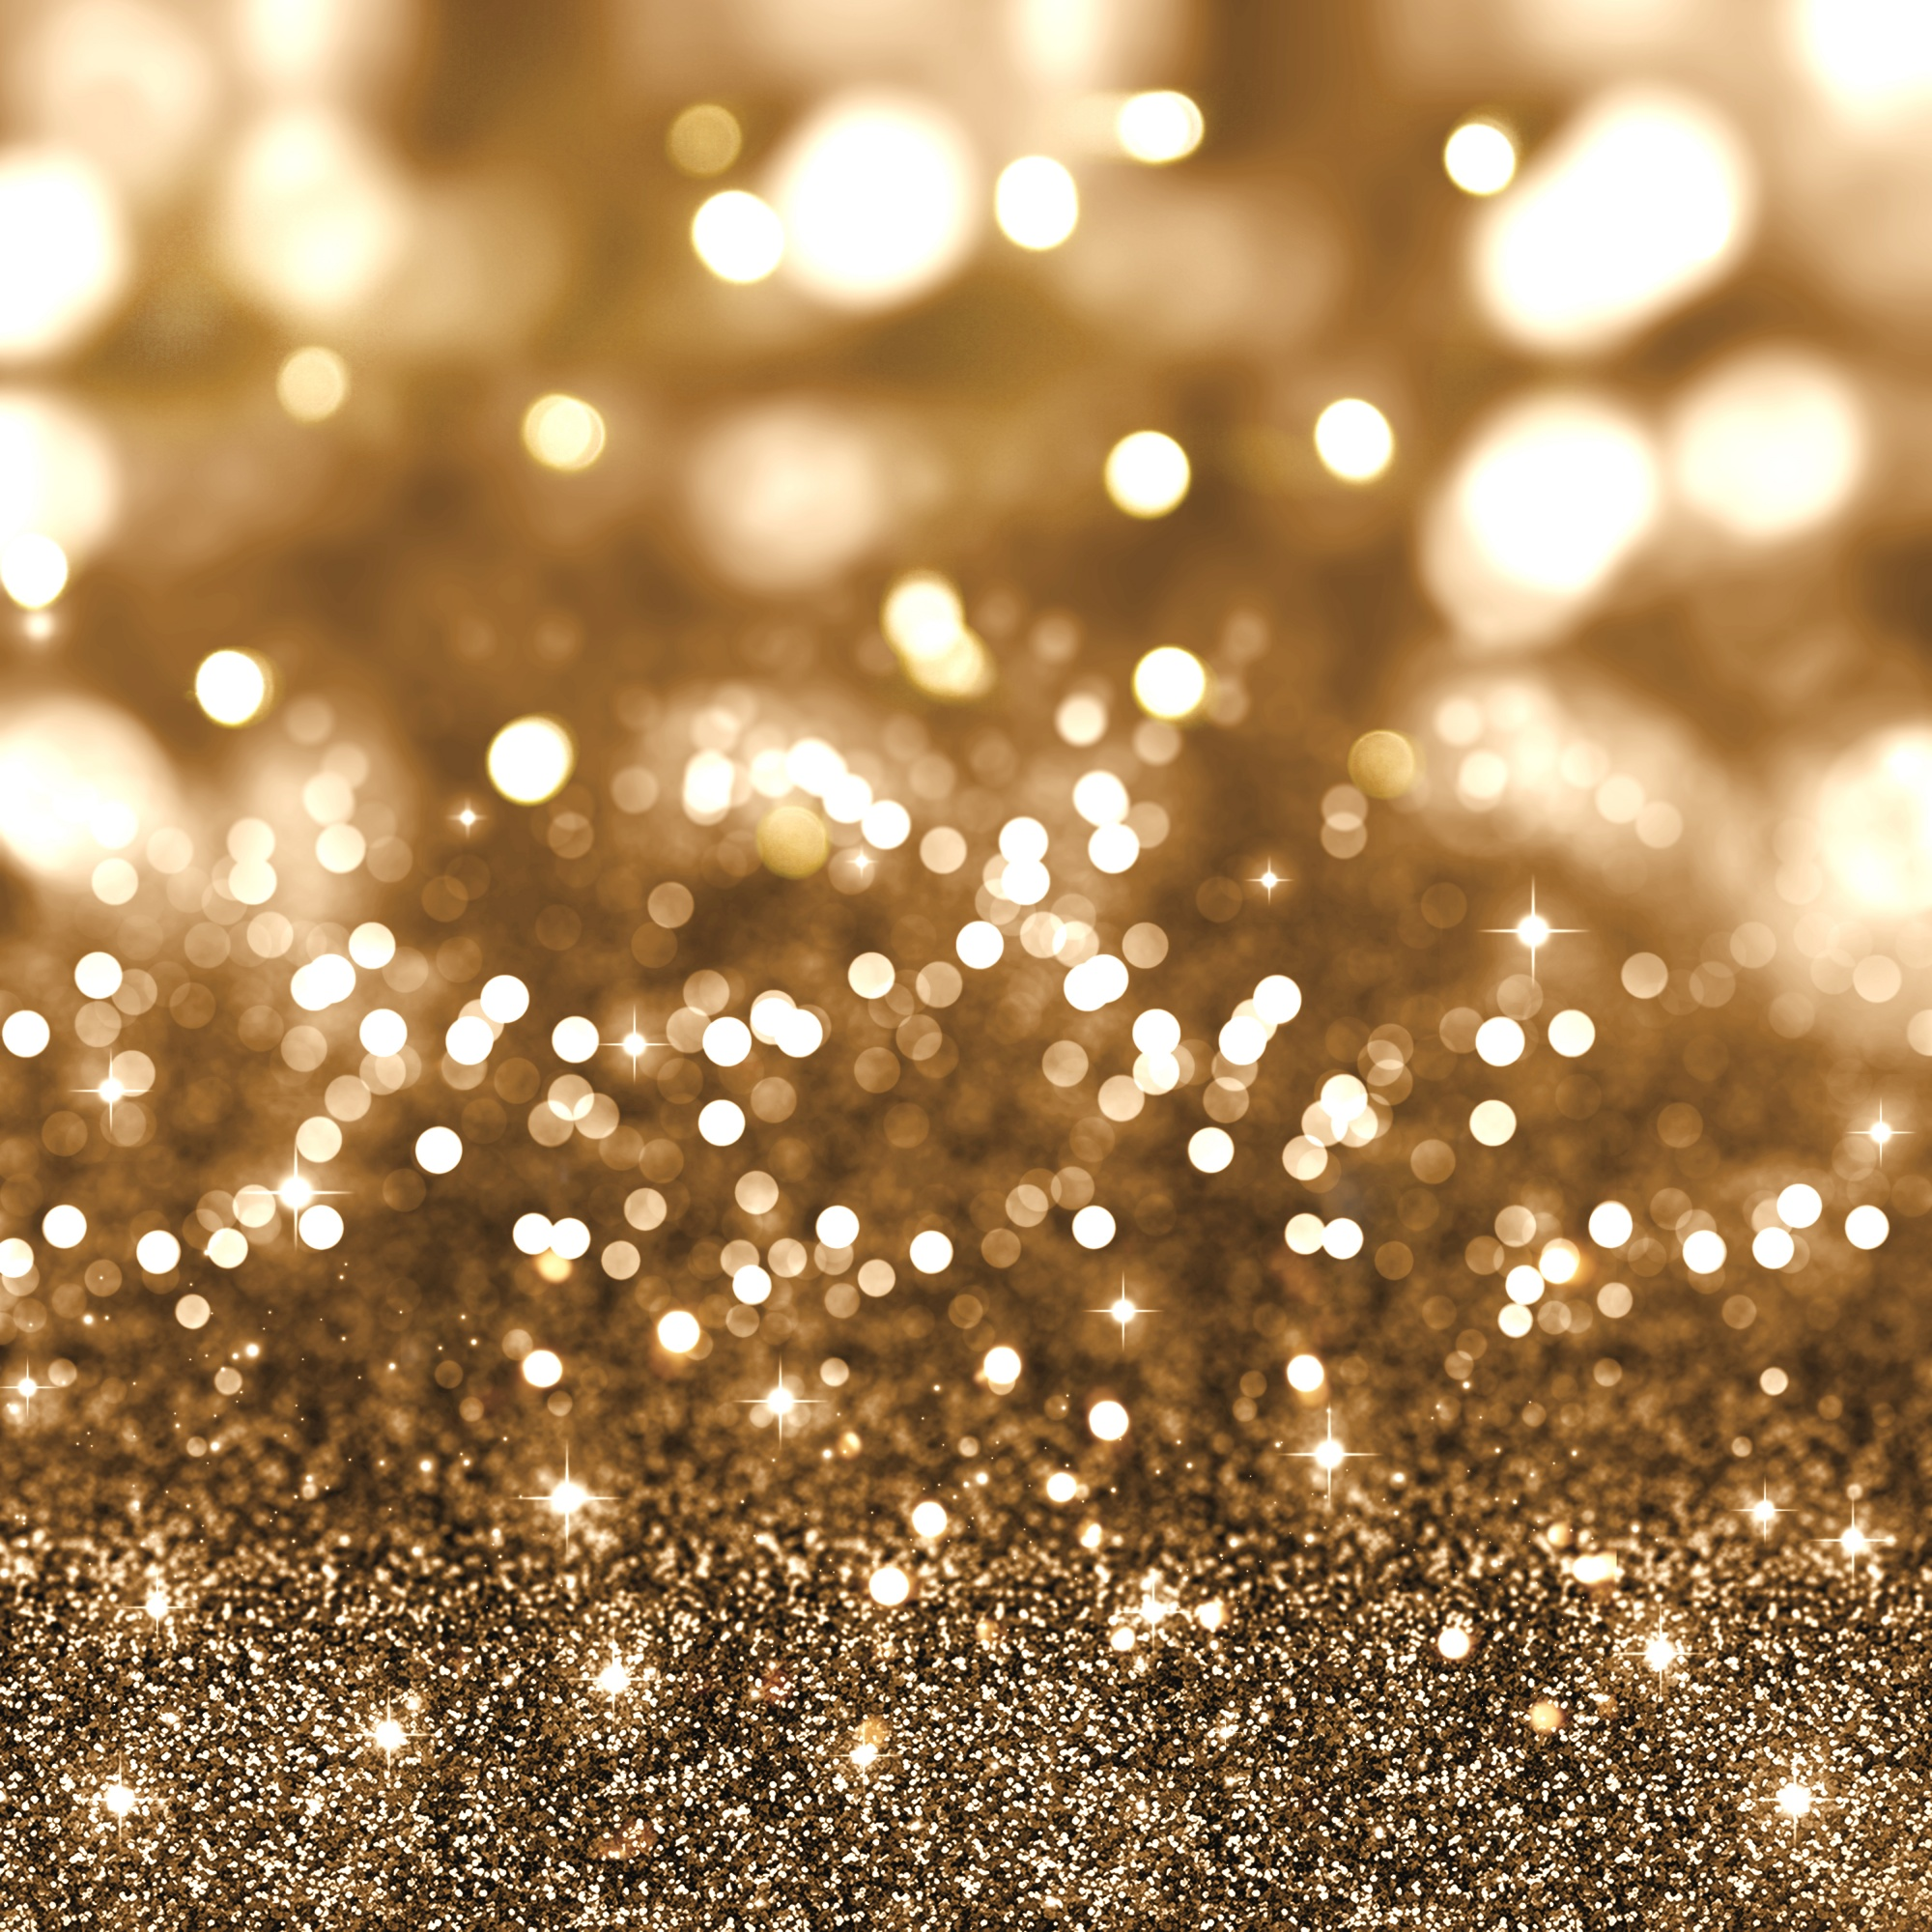 Golden christmas glitter background with stars and bokeh lights